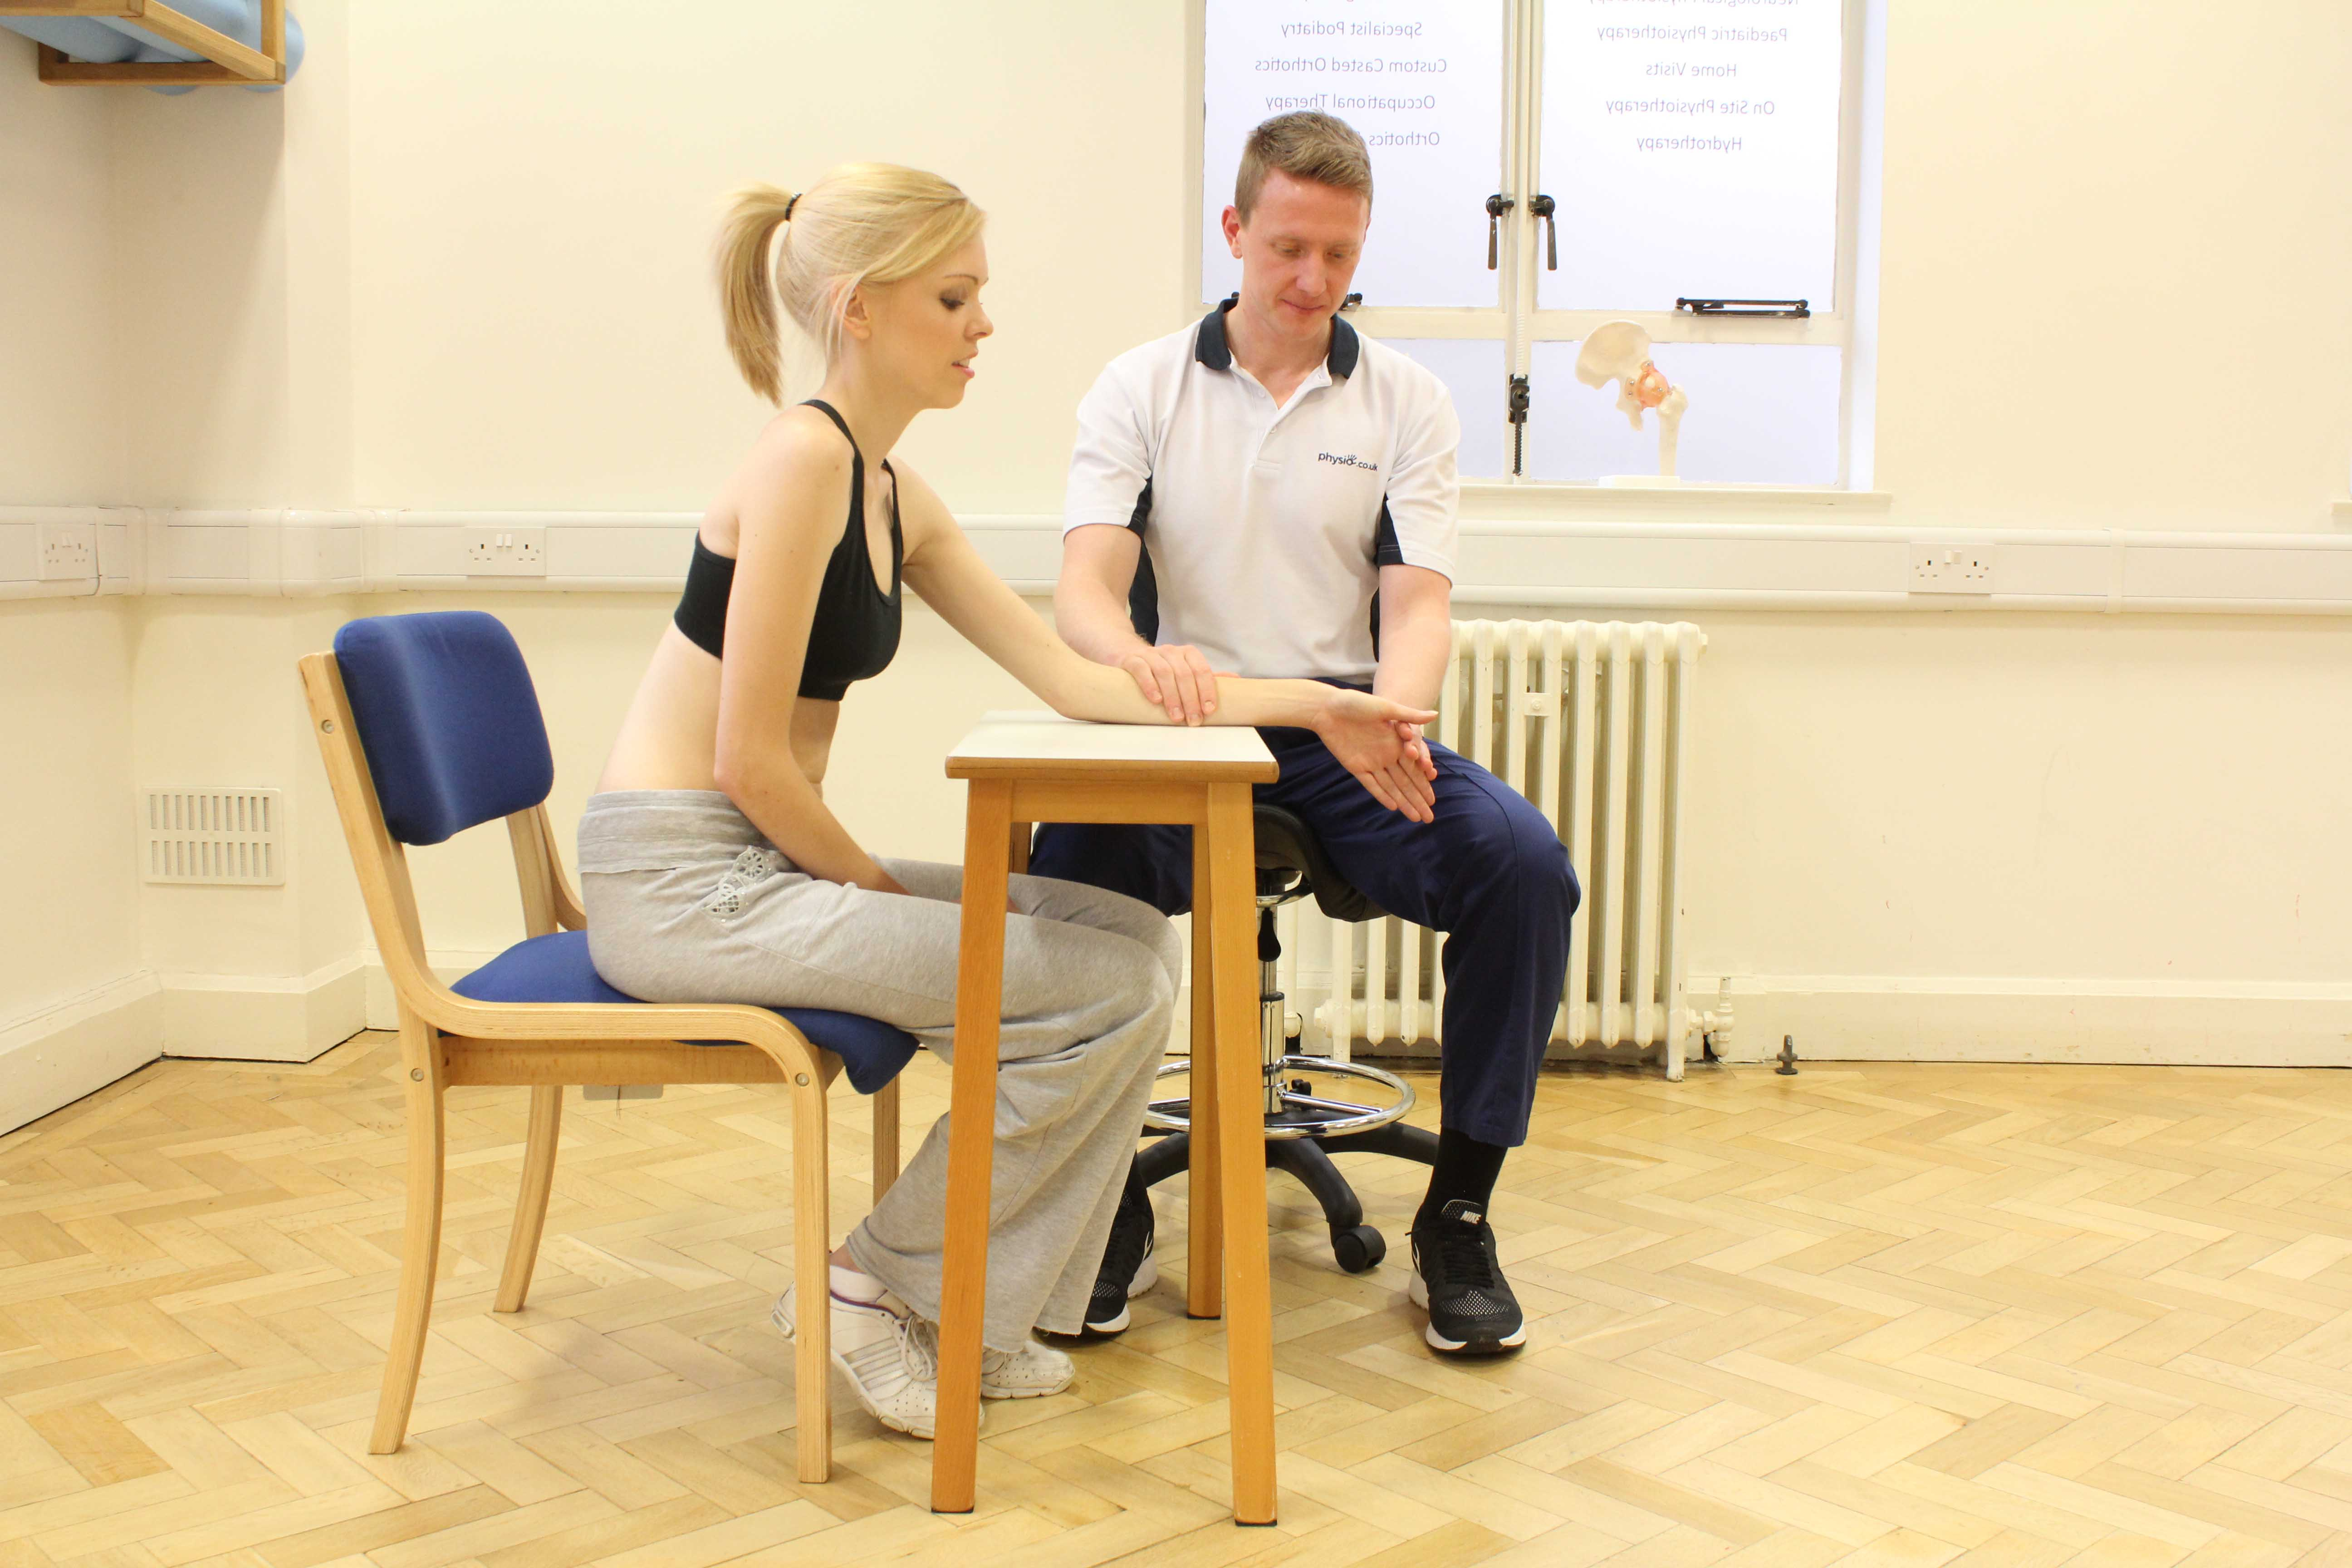 Phtsiotherapist assisted lateral deviation of the wrist stretches